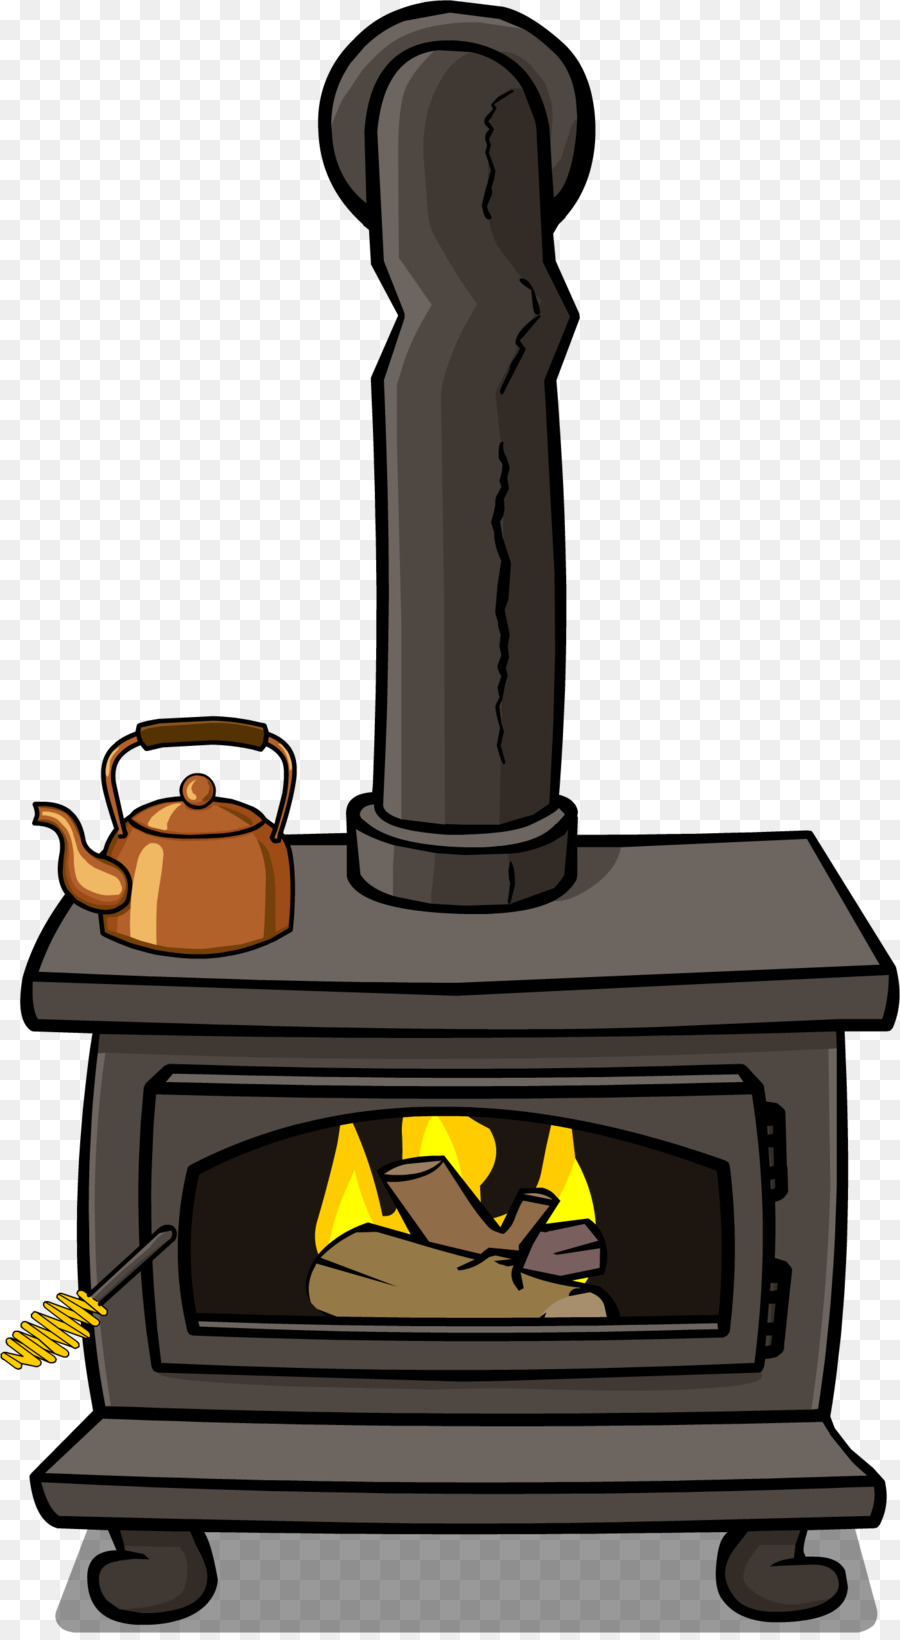 Firewood clipart cooking. Wood background